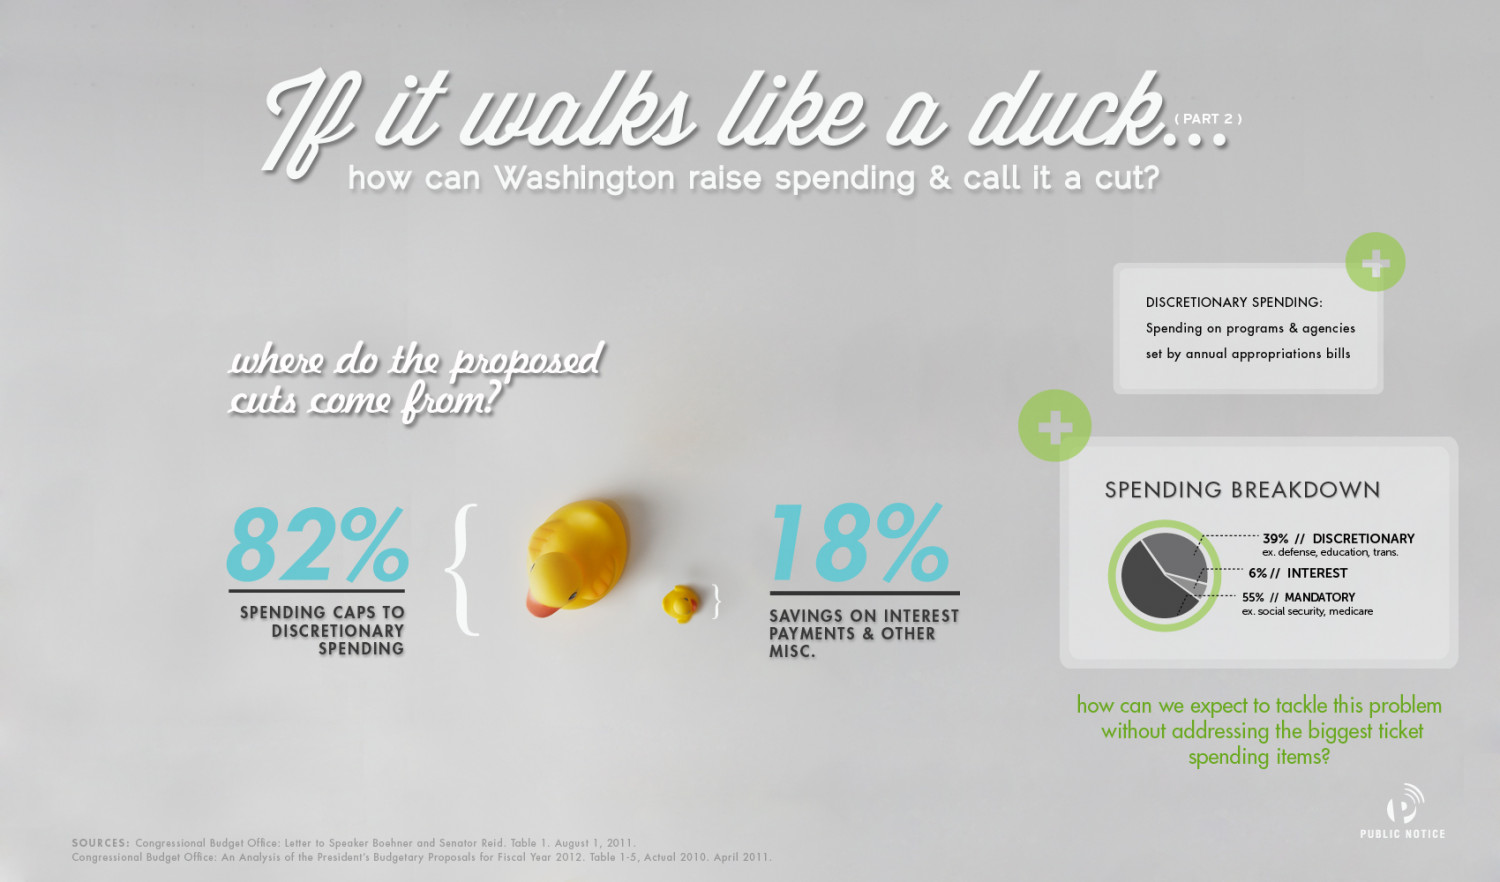 If It Walks Like a Duck: Part 2 Infographic